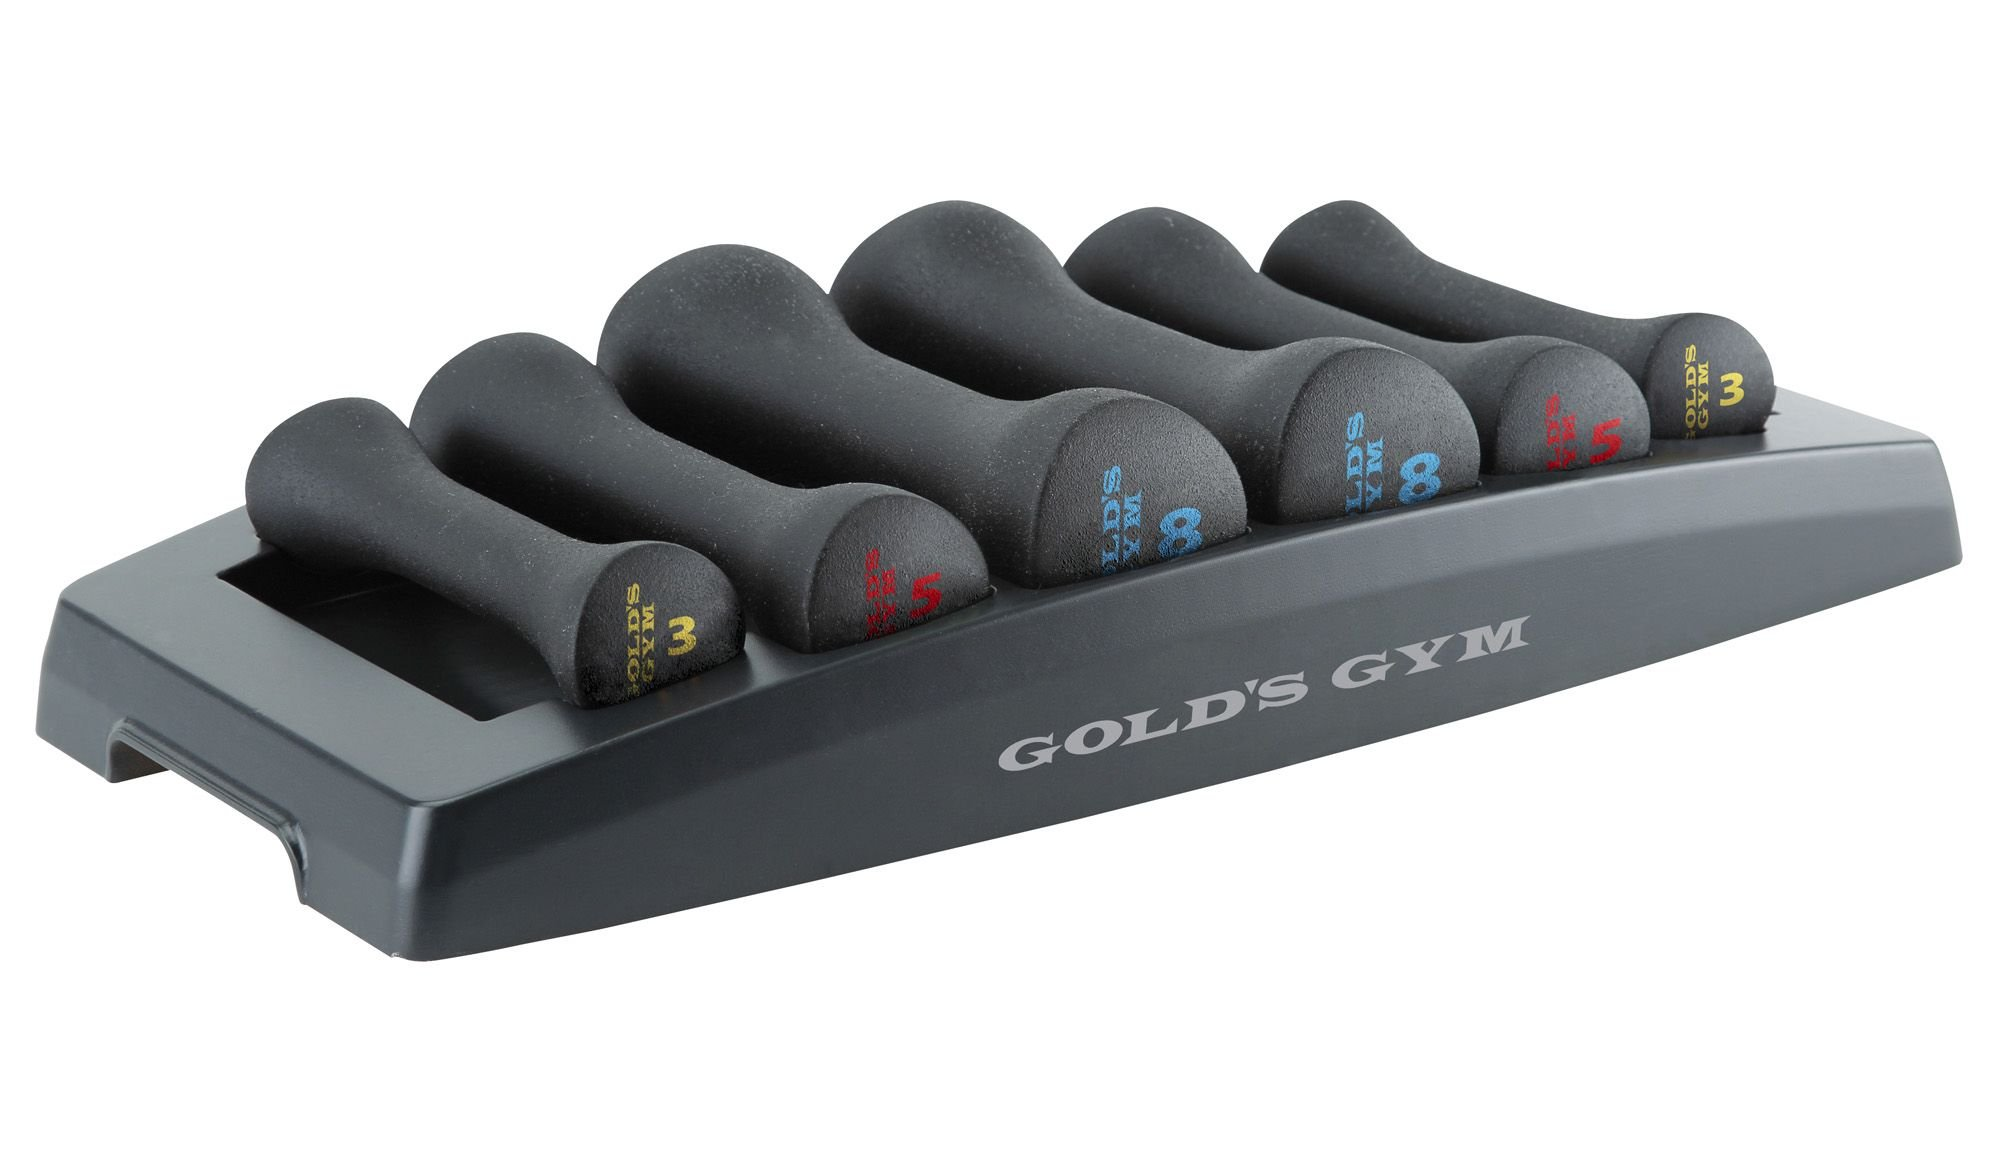 Gold's Gym Fitness Workout Hand Weights Exercise Dumbbell Set with Storage Tray